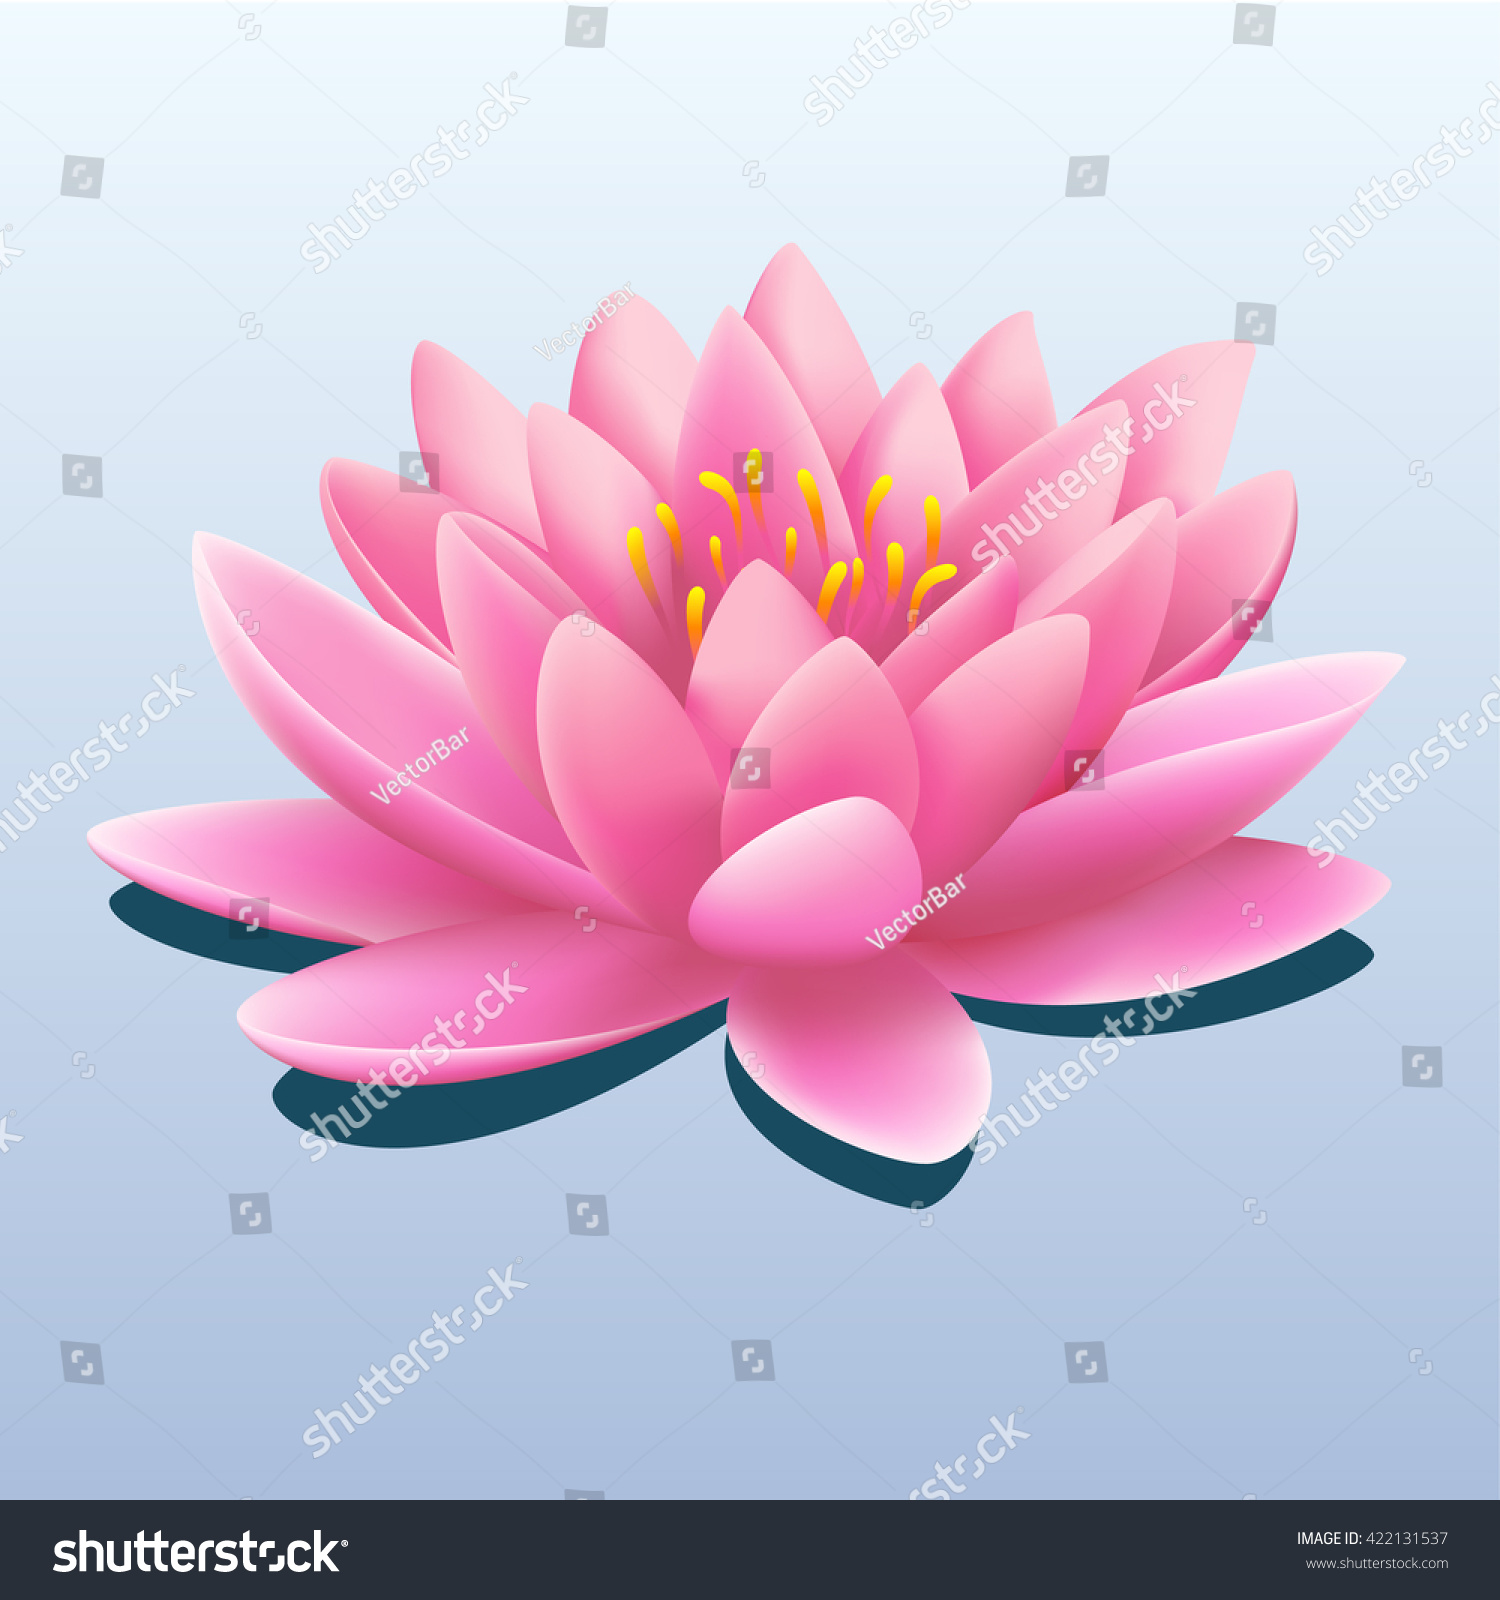 Pretty pink water lily lotus flower stock vector 422131537 pretty pink water lily or lotus flower with drop shadow over a gradient grey background dhlflorist Images